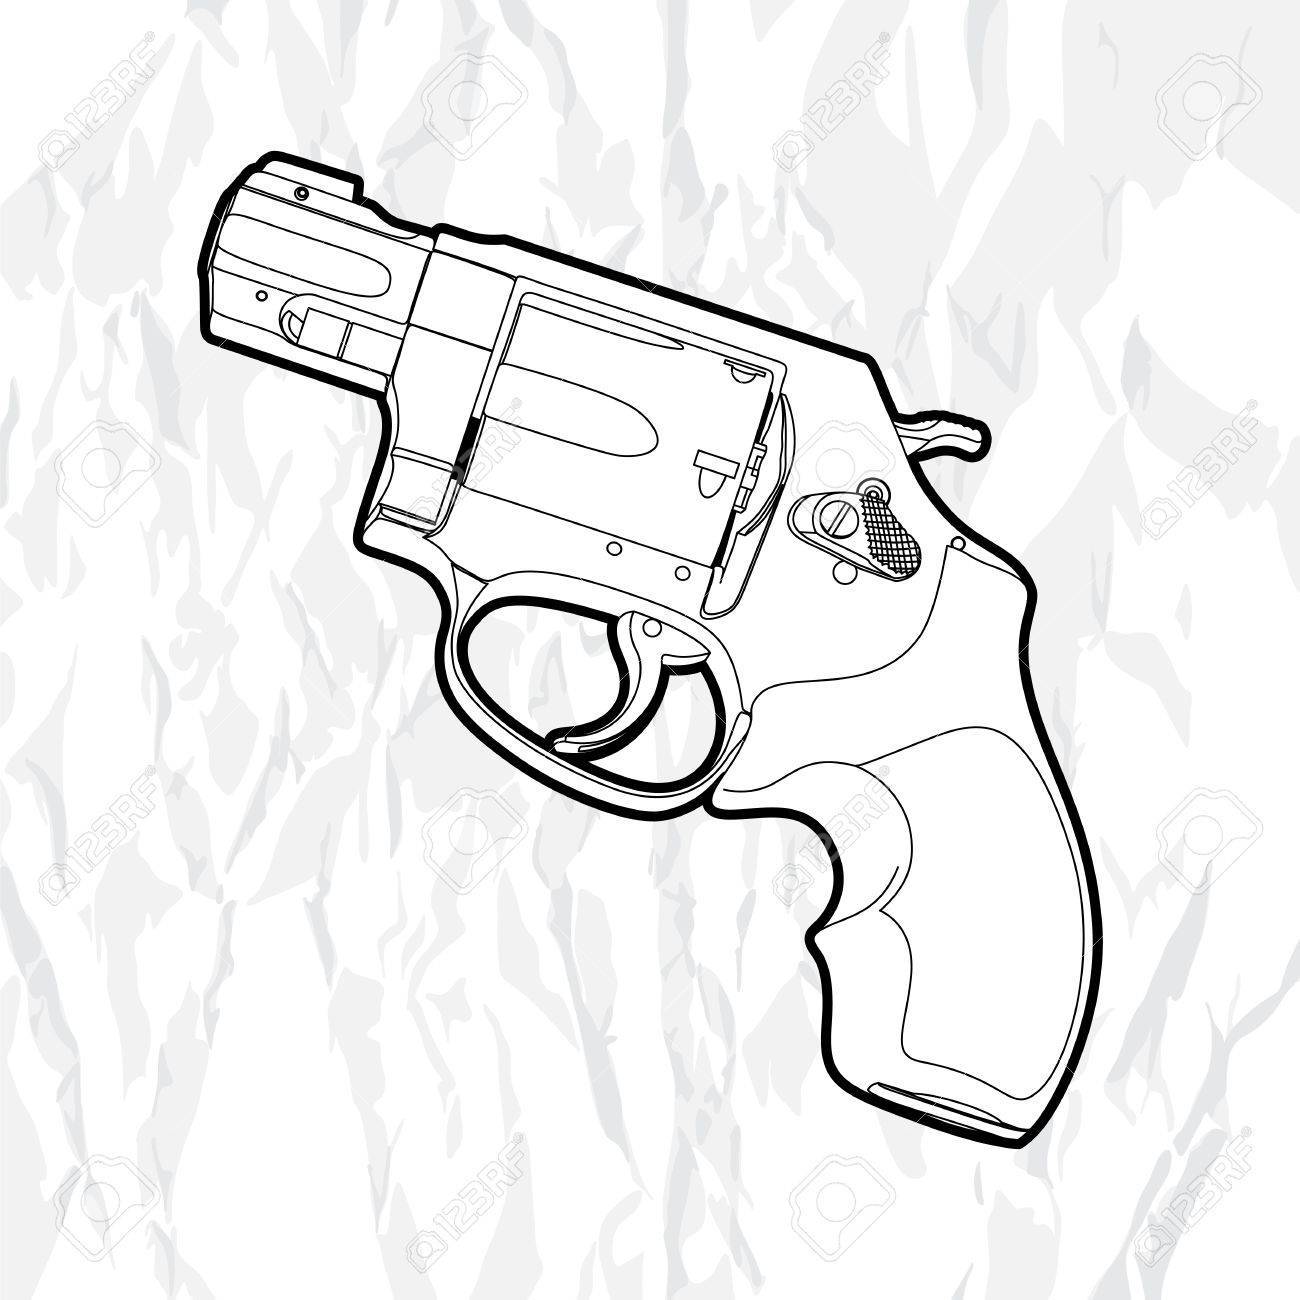 1300x1300 Outline Revolver Gun On White Royalty Free Cliparts, Vectors,